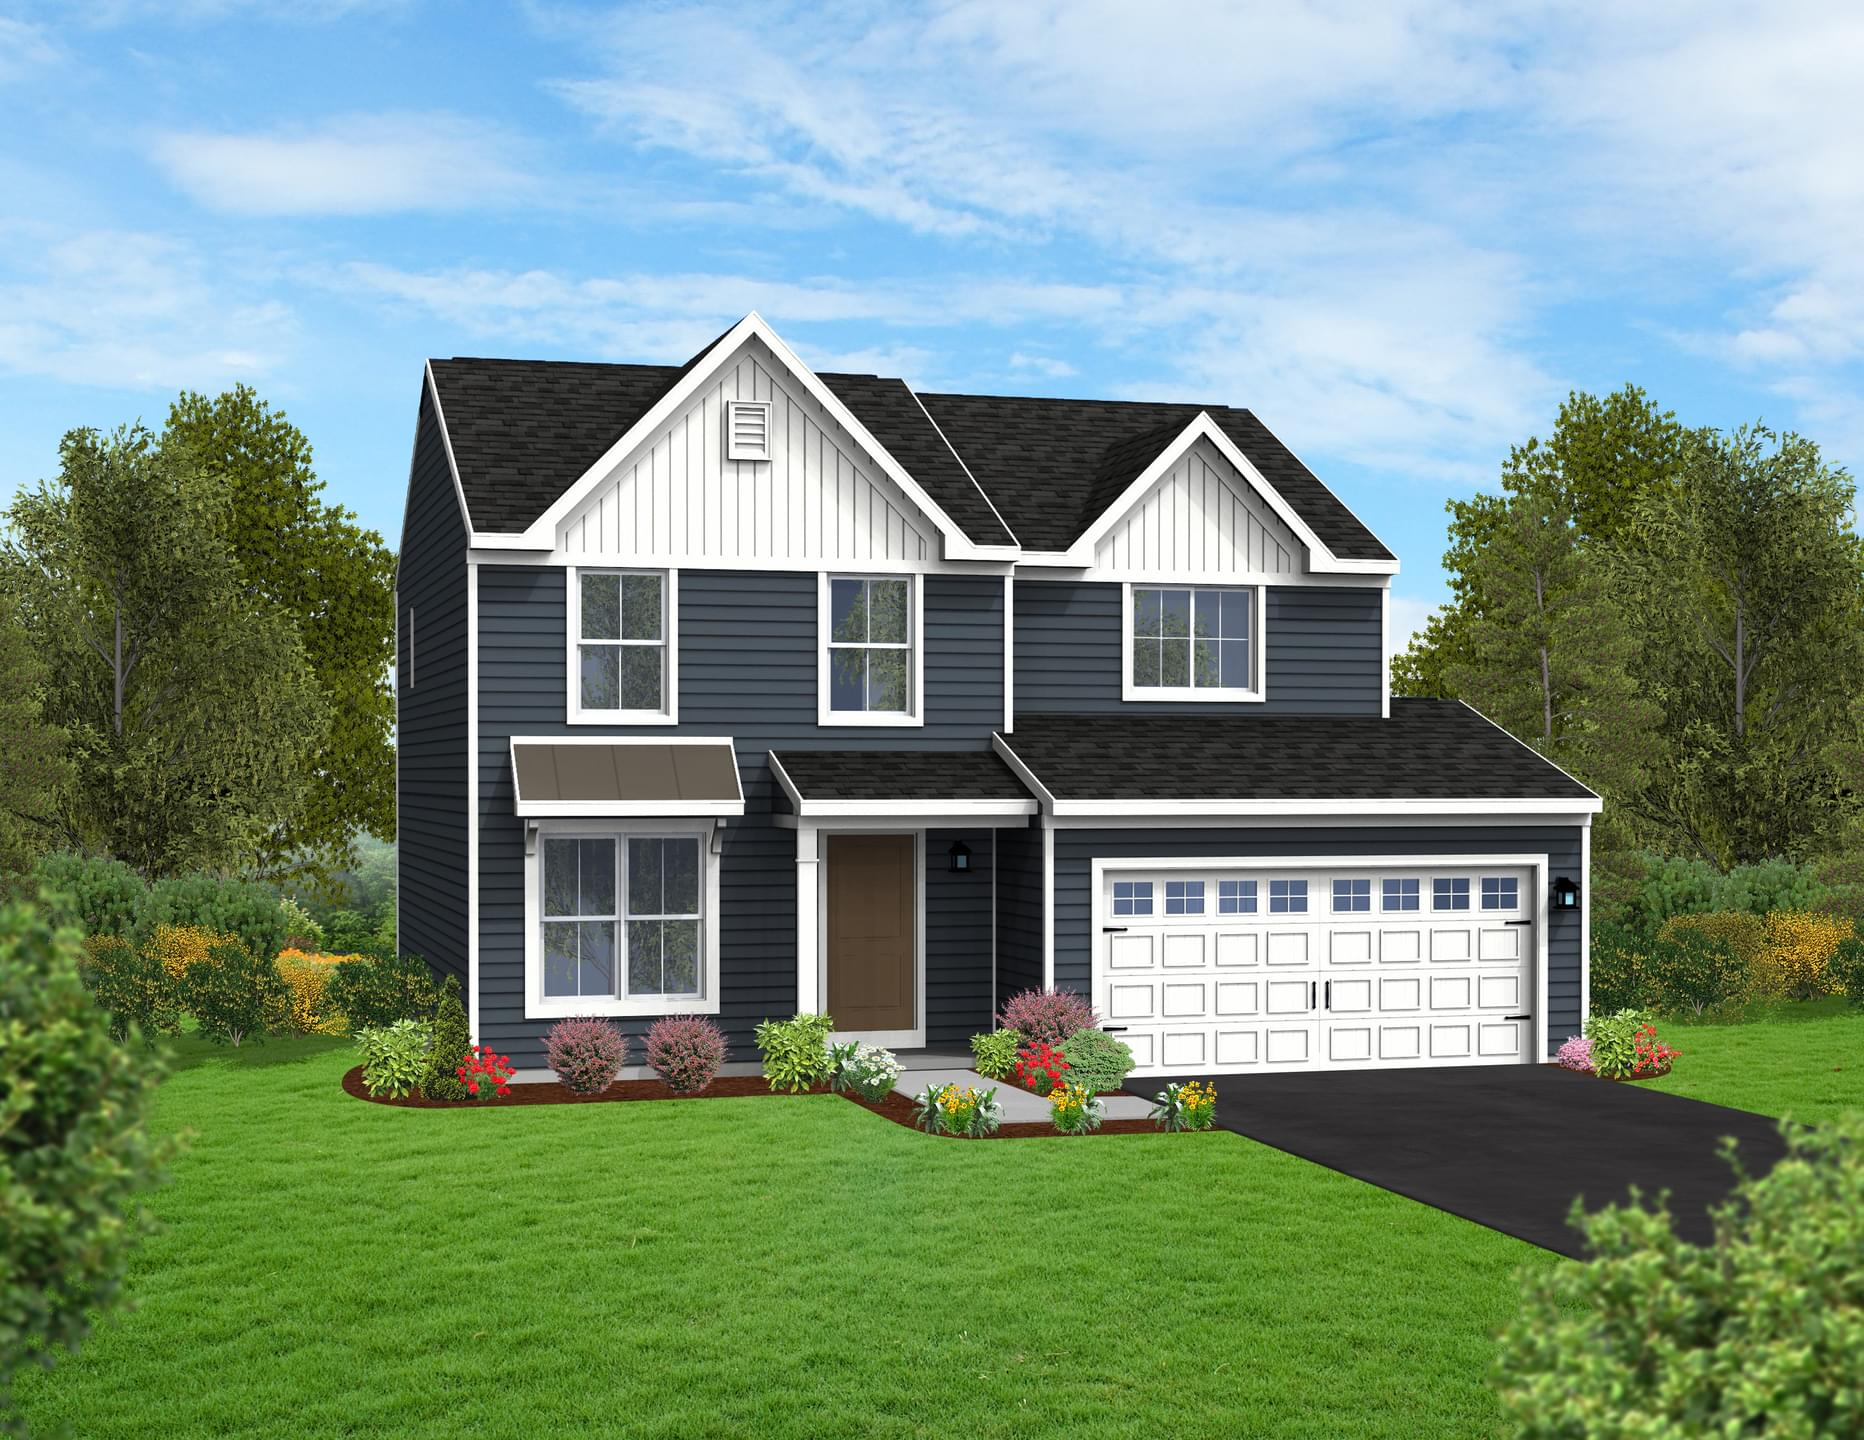 Berks Homes in Lot# 138 174 Cambridge Lane, Lewistown, PA 17044 PA